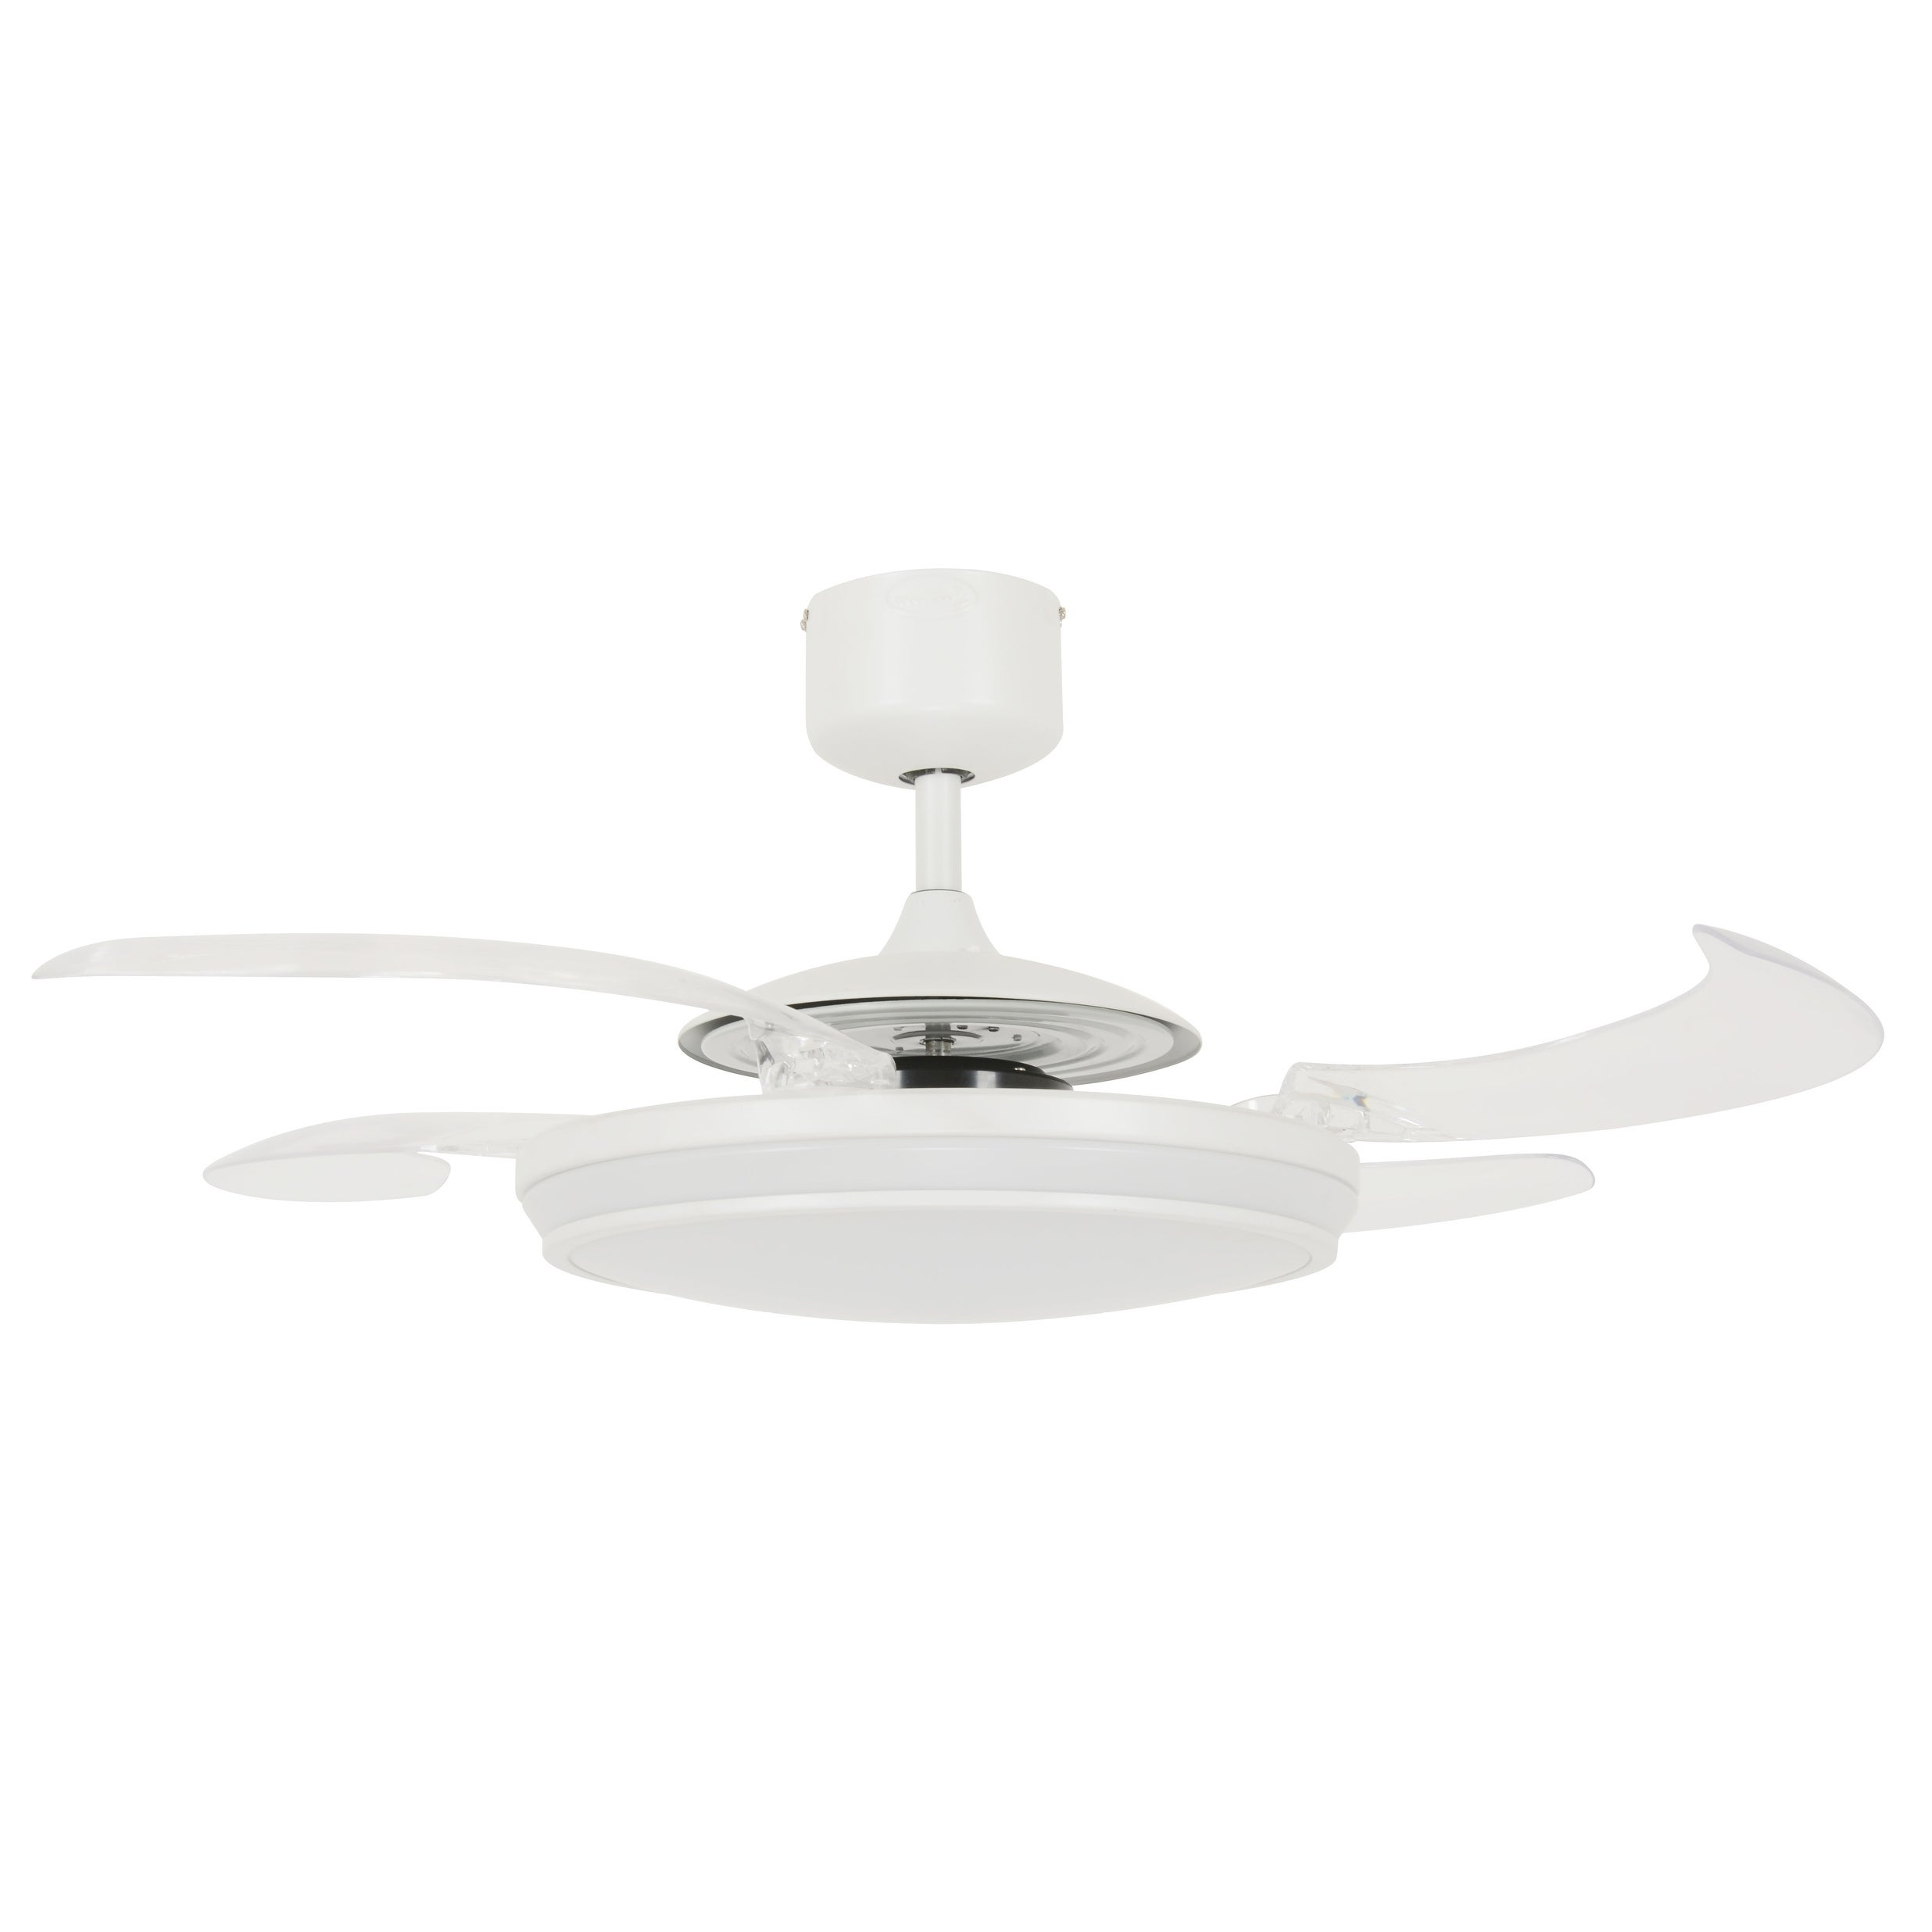 Shop Fanaway Evo1 LED Lighting with Remote Ceiling Fan - Free ...